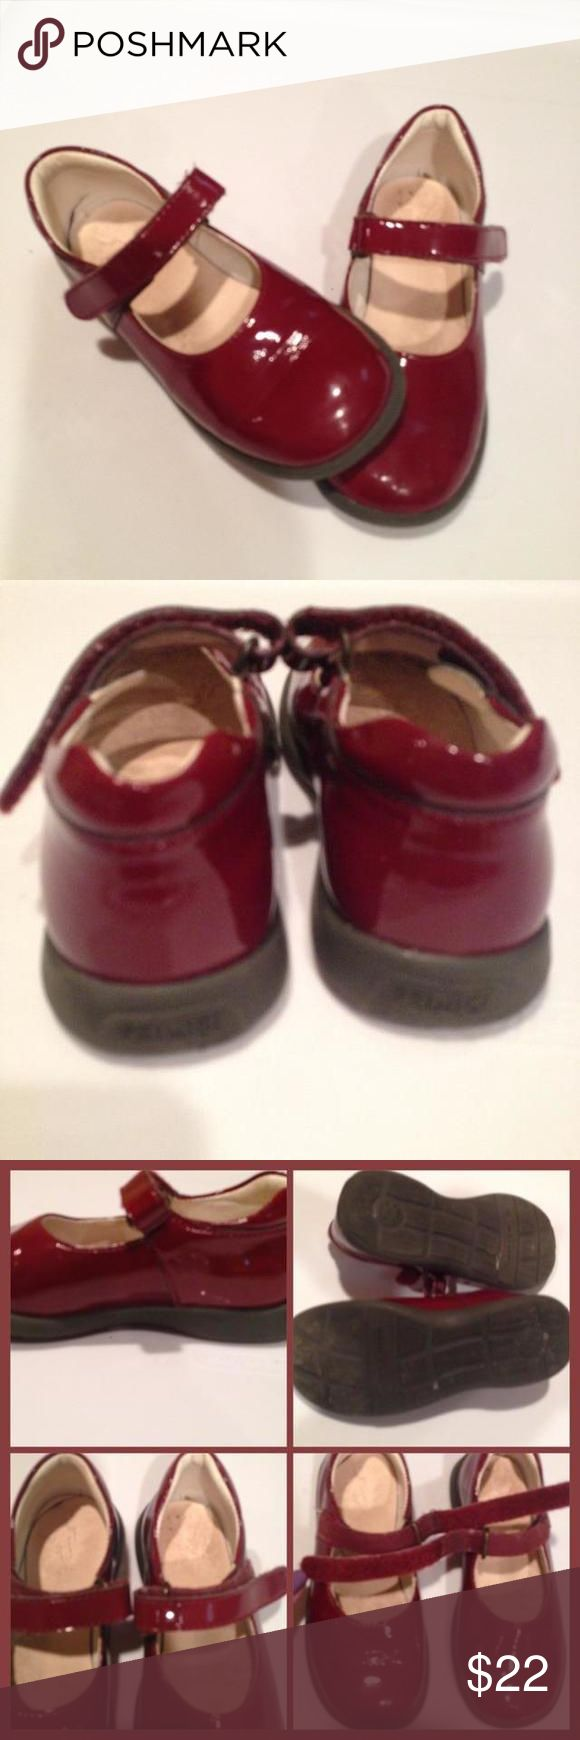 💸PRIMIGI mary jane shoe Patten leather mary janes with velvro closure. Very good condition! Nordstrom purchase. Great for back to school! Anti shock & flexi sole. Size 26Eu = S9/9,5 Primigi  Shoes